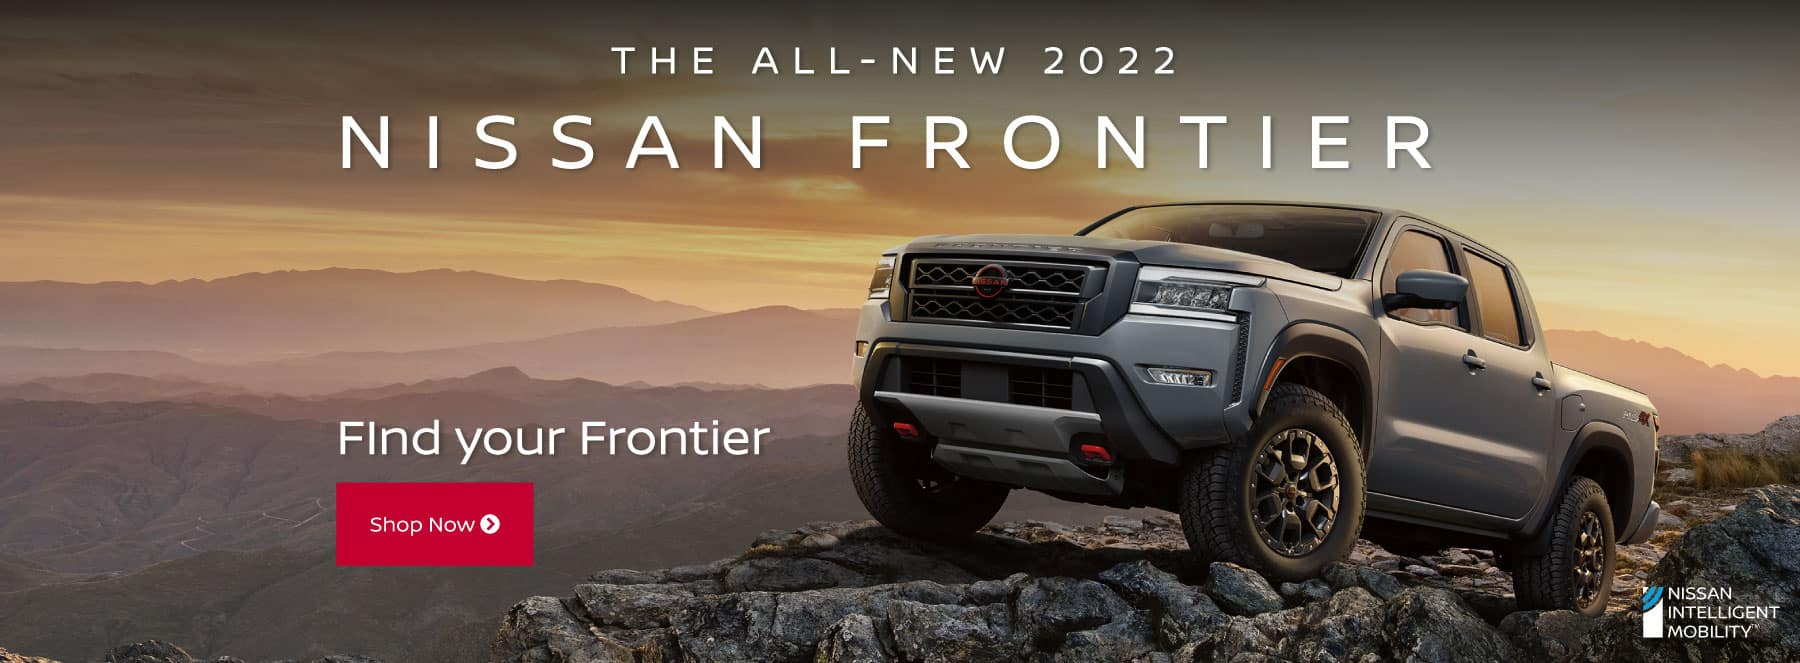 All New 2022 Nissan Frontier